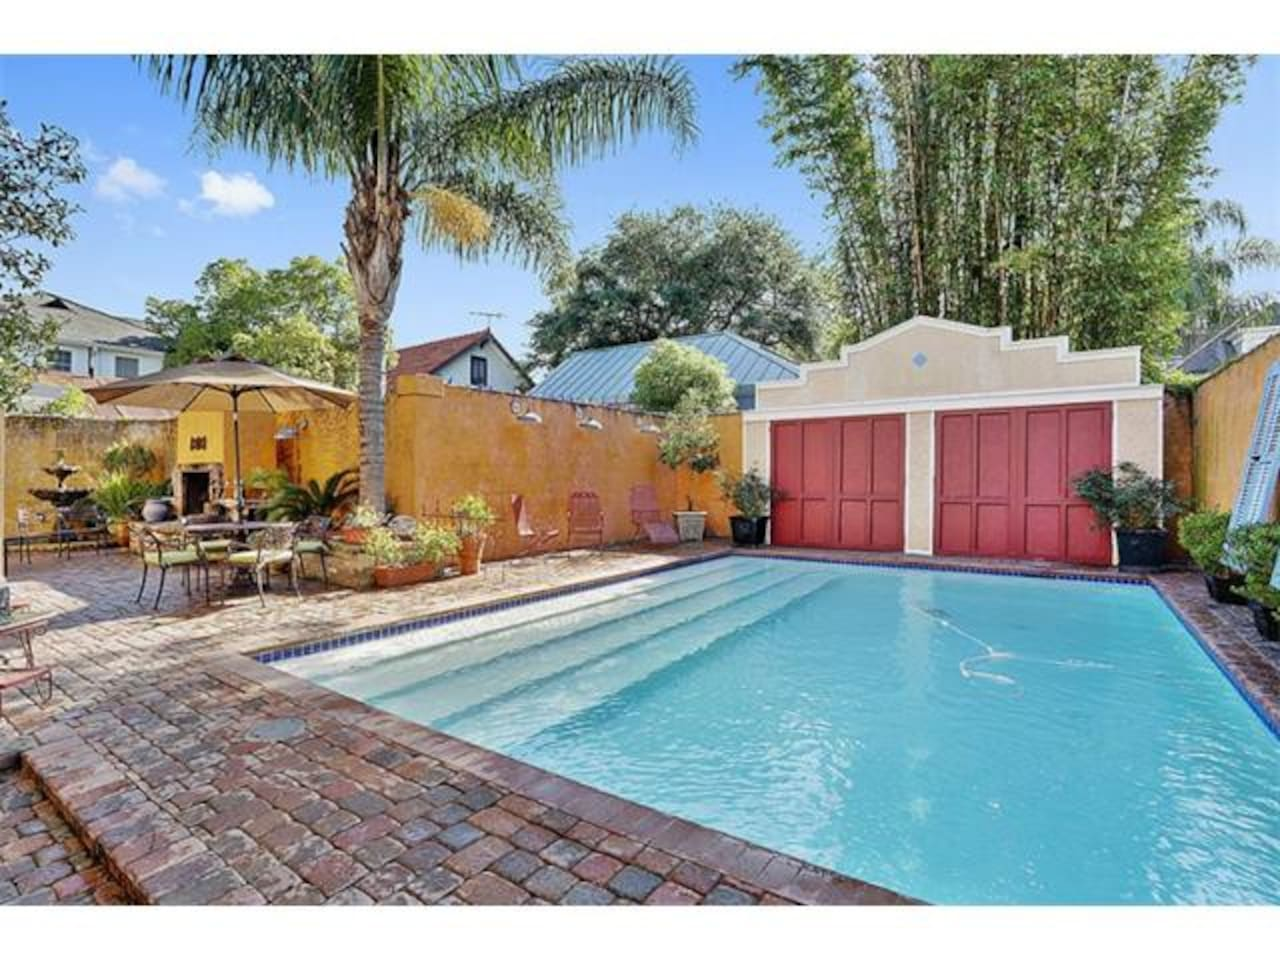 The backyard which features a pool, outdoor bathroom (including a shower) and an outdoor fireplace